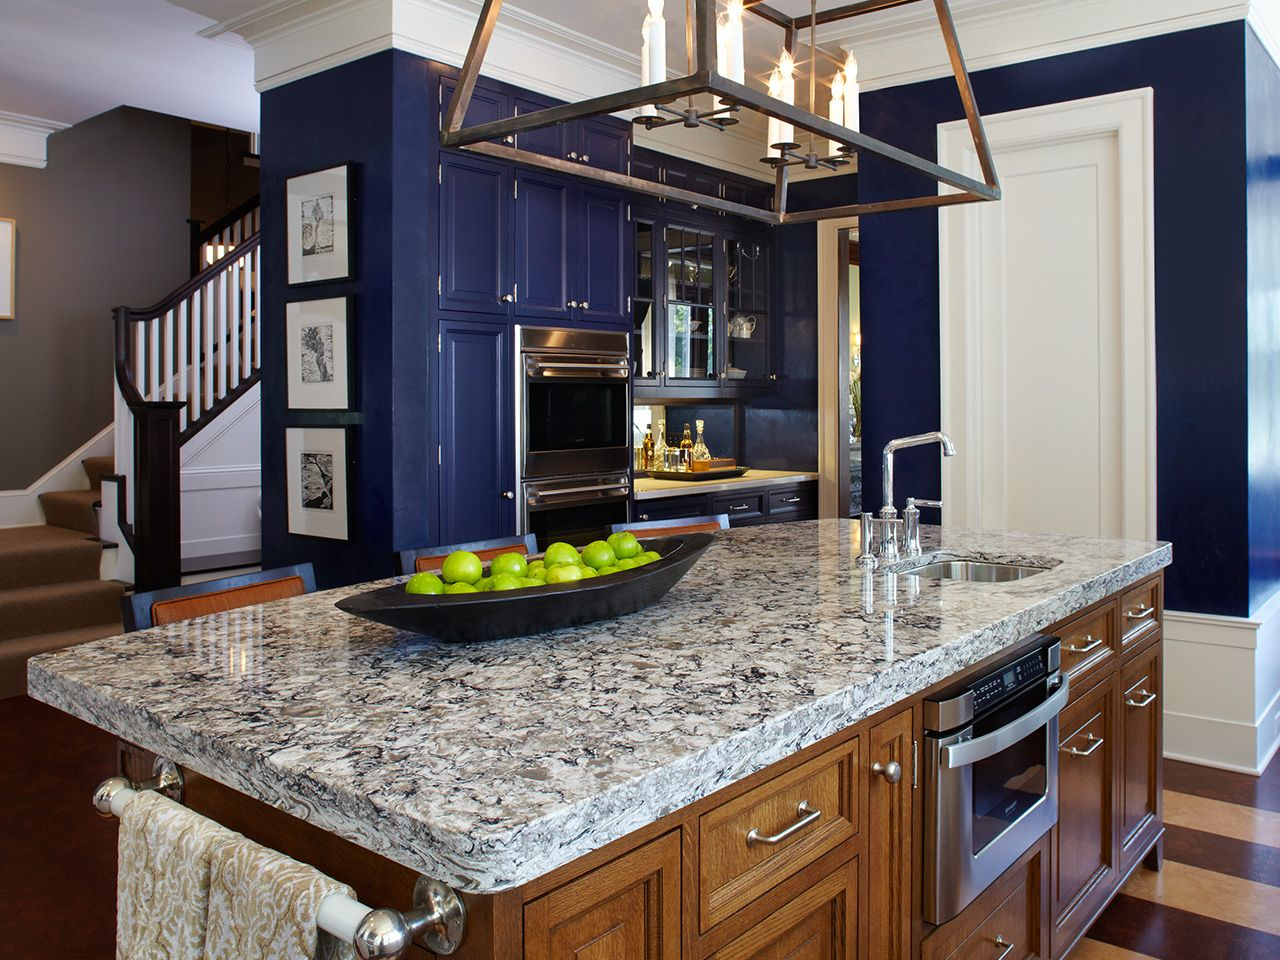 Countertop Design Bellingham By Cambria Quartz In This Kitchen